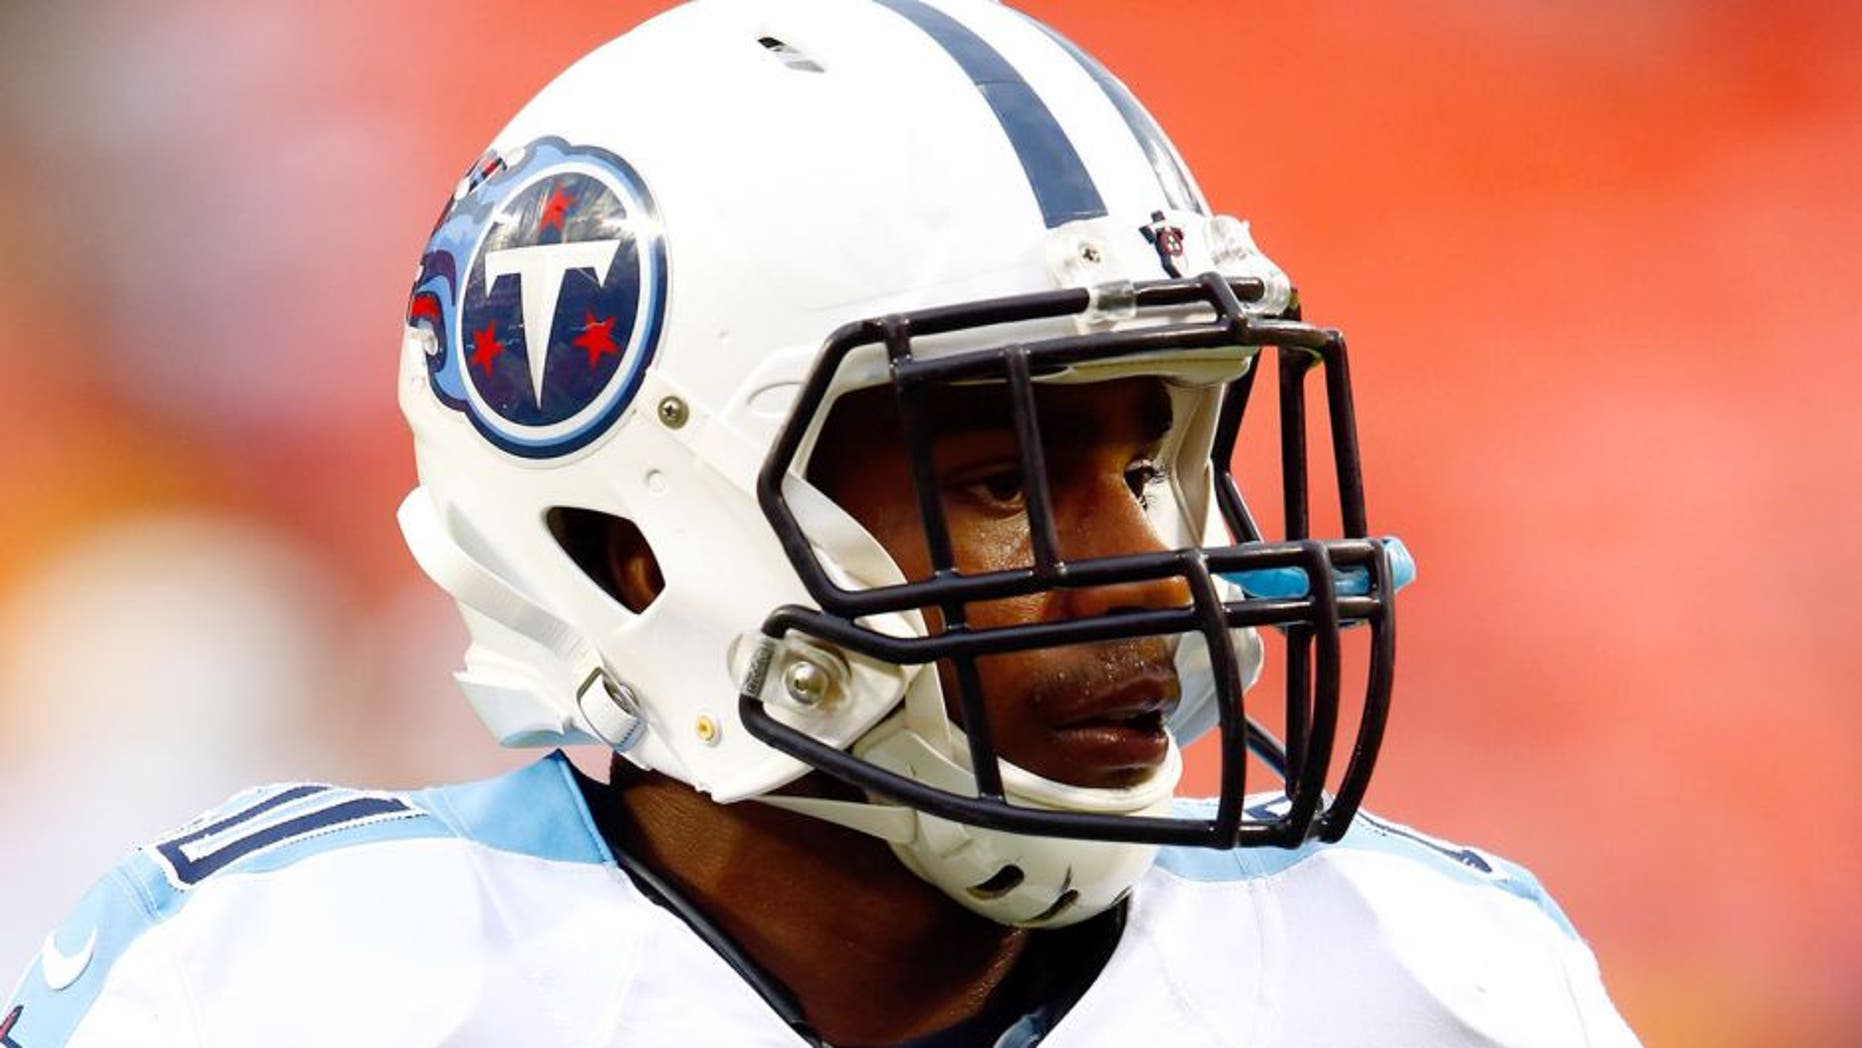 KANSAS CITY, MO - AUGUST 28: Running back Bishop Sankey #20 of the Tennessee Titans warms up prior to the preseason game against the Kansas City Chiefs at Arrowhead Stadium on August 28, 2015 in Kansas City, Missouri. (Photo by Jamie Squire/Getty Images)